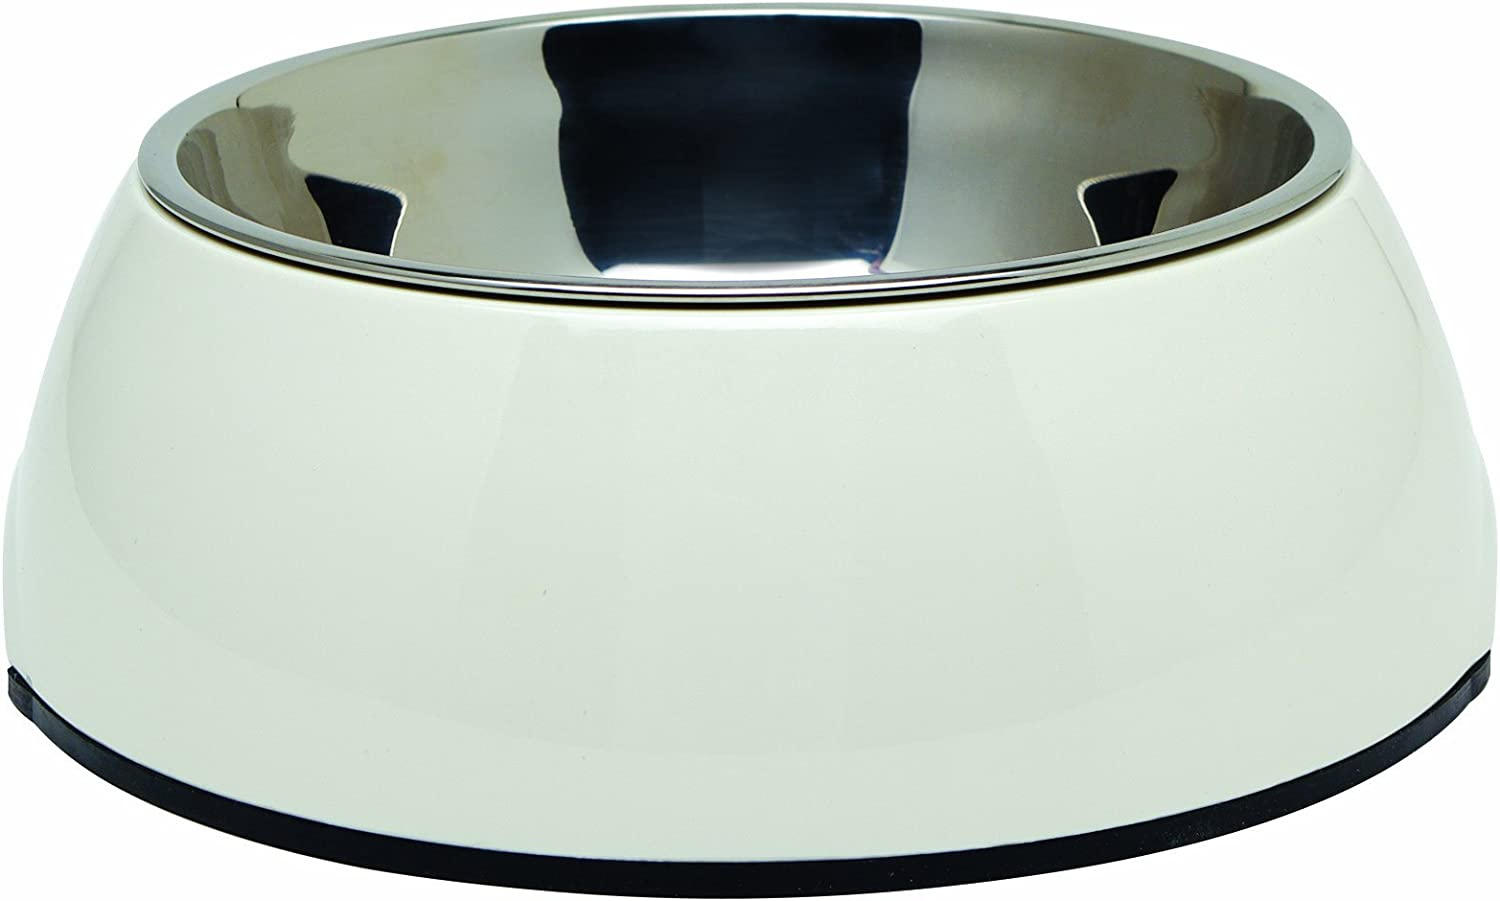 Dogit 2in1 Durable Bowl, White, Small